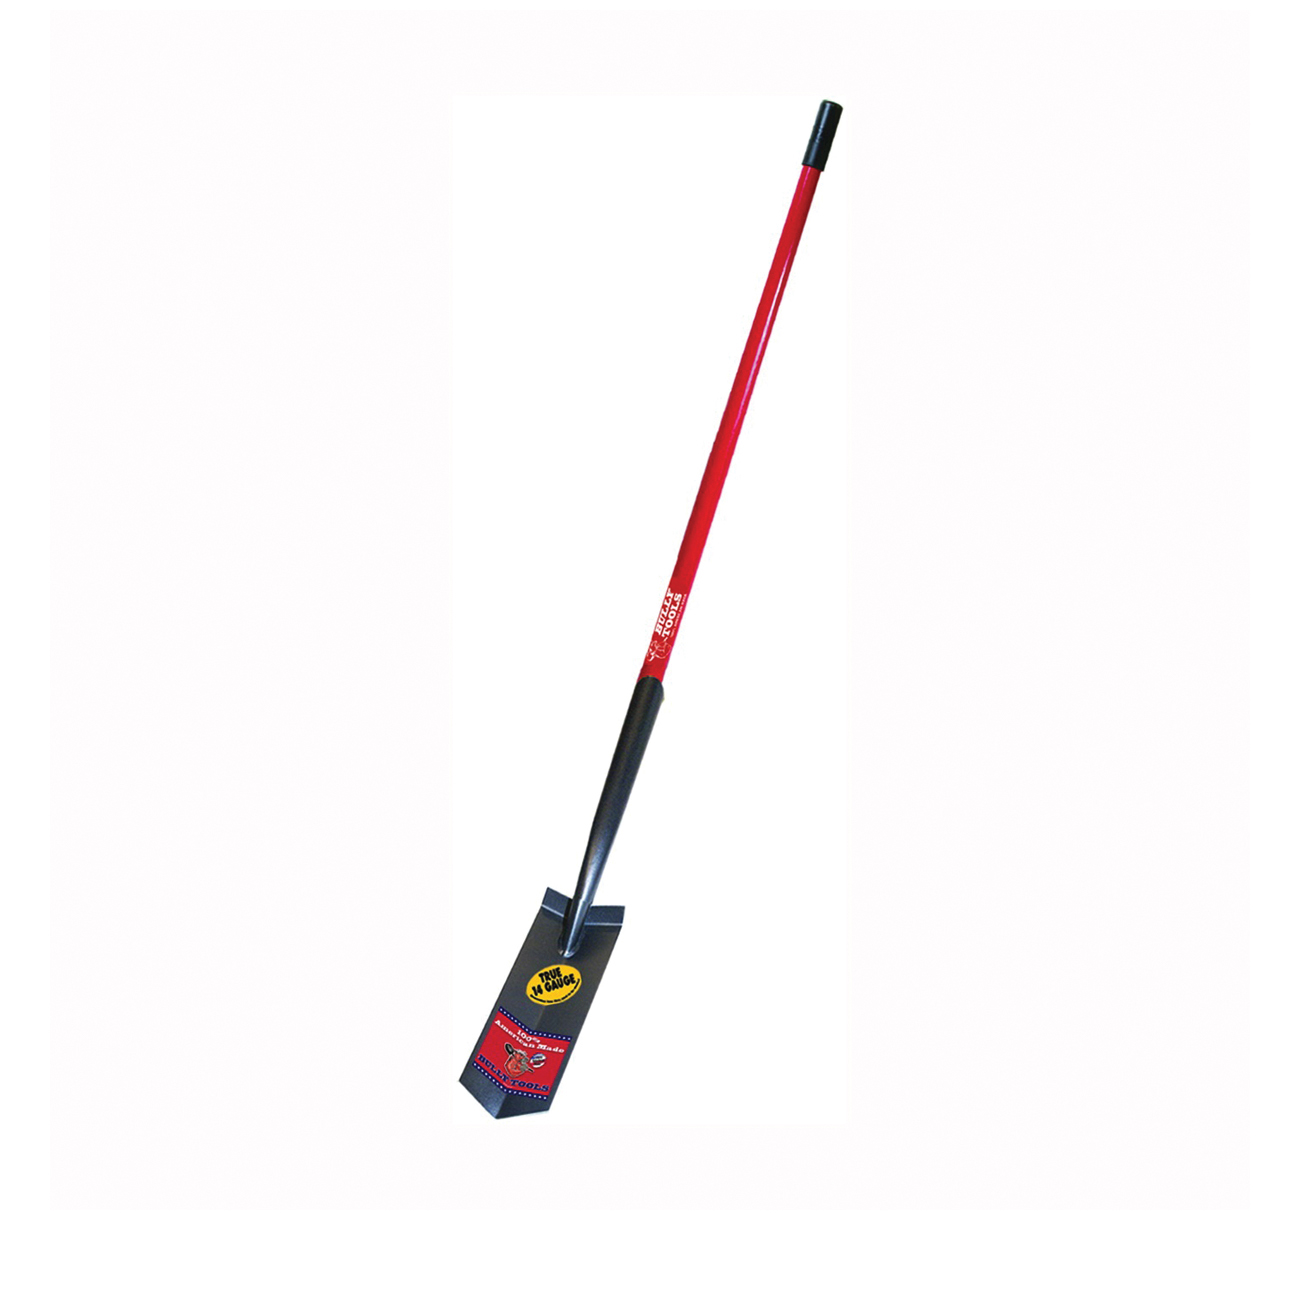 Picture of BULLY Tools 92720 Trenching Shovel, 4 in W Blade, 14 ga Gauge, Steel Blade, Fiberglass Handle, Long Handle